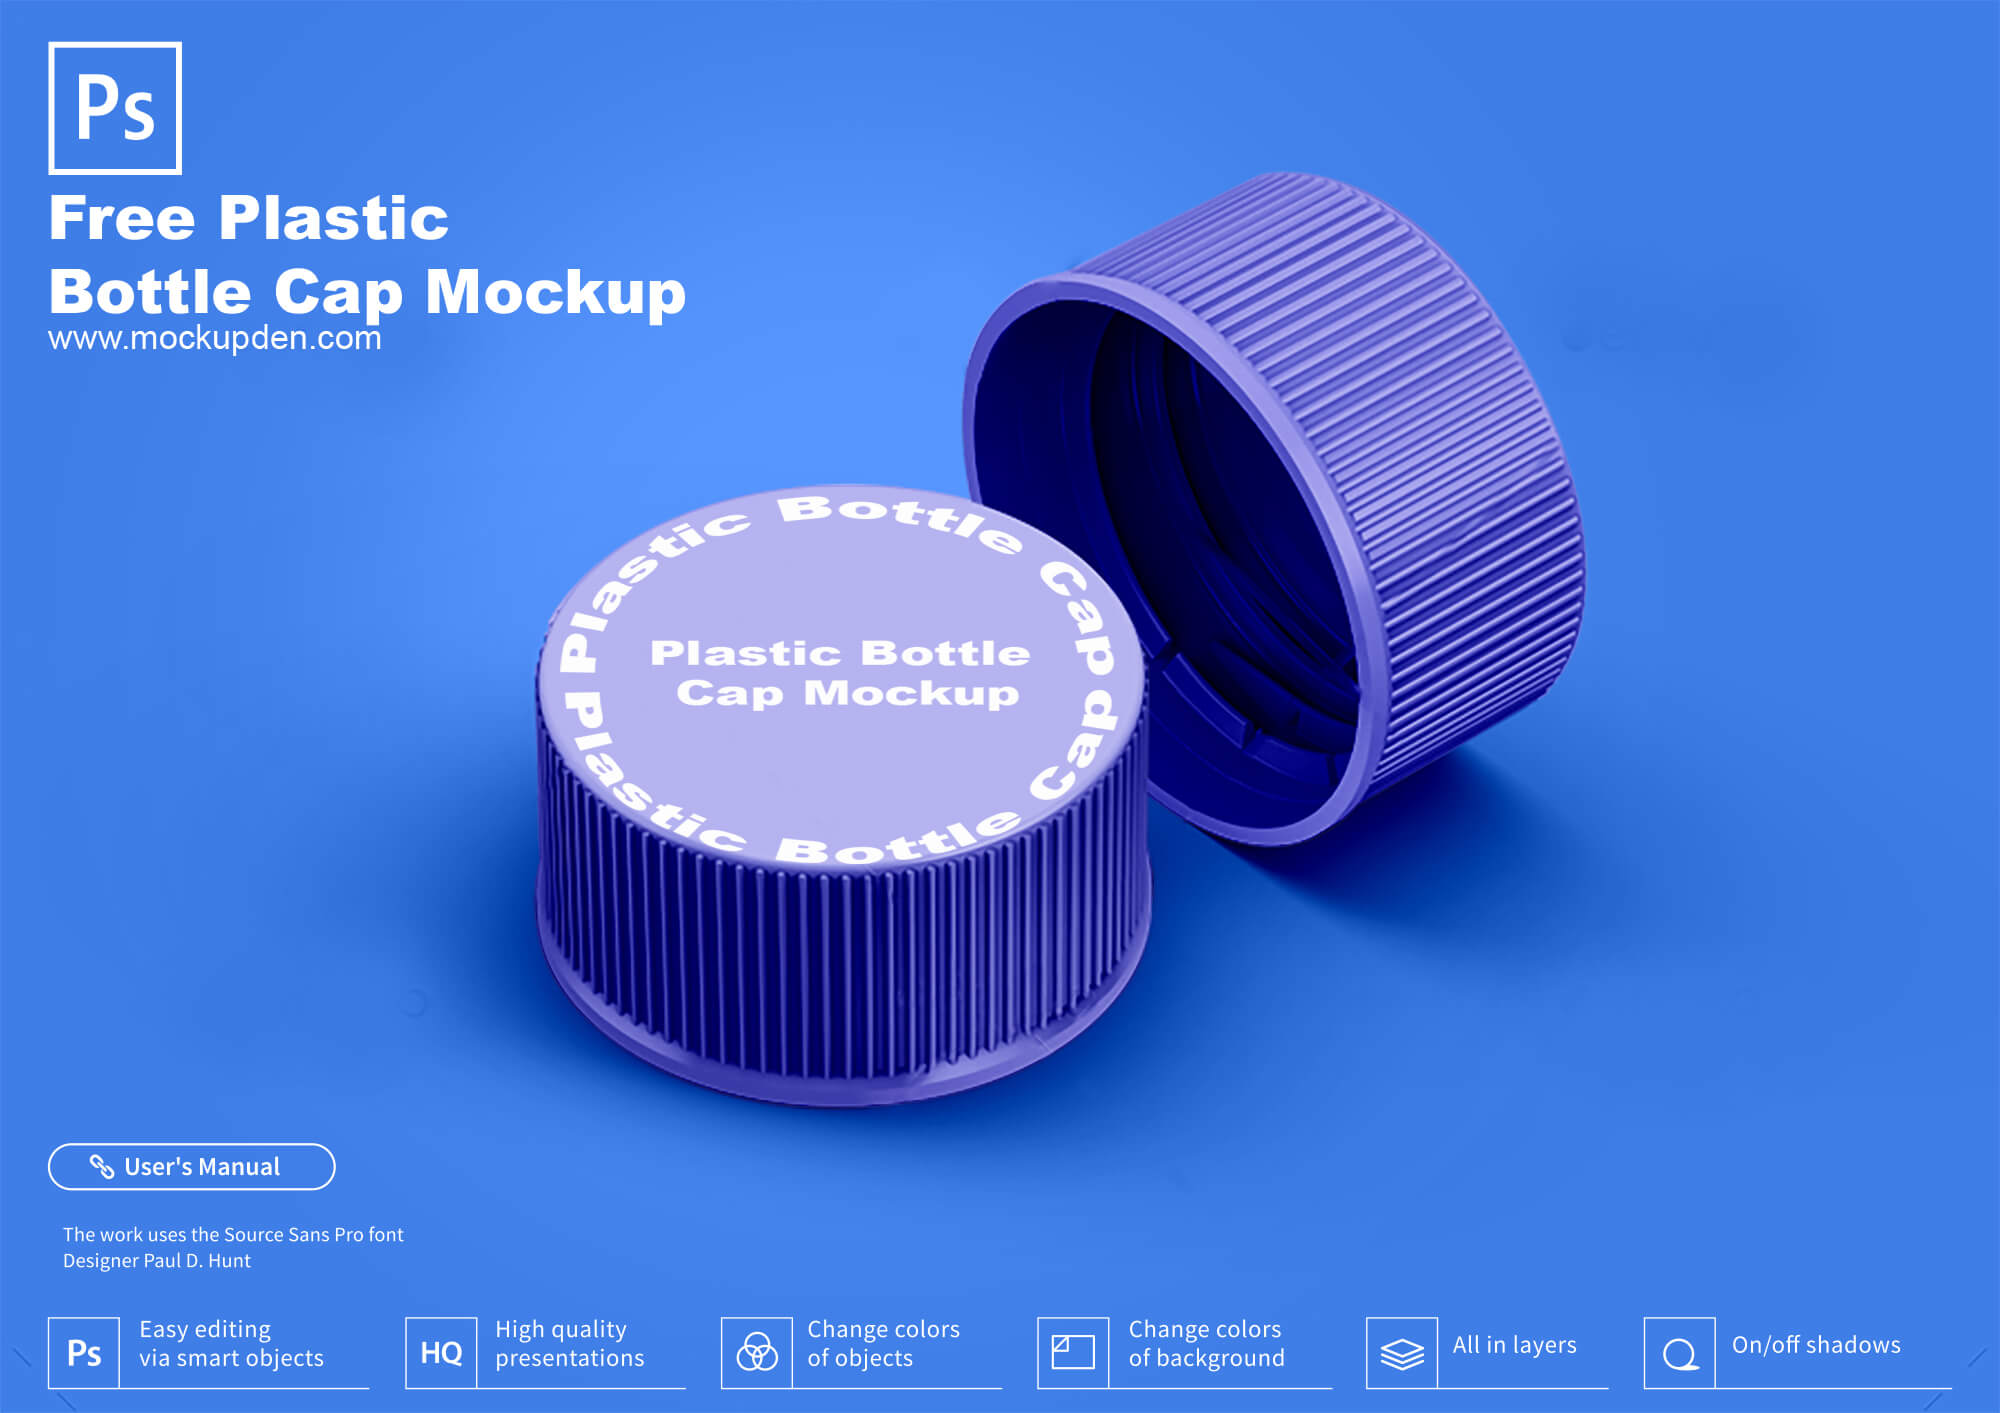 Free Plastic Bottle Cap Mockup PSD Template